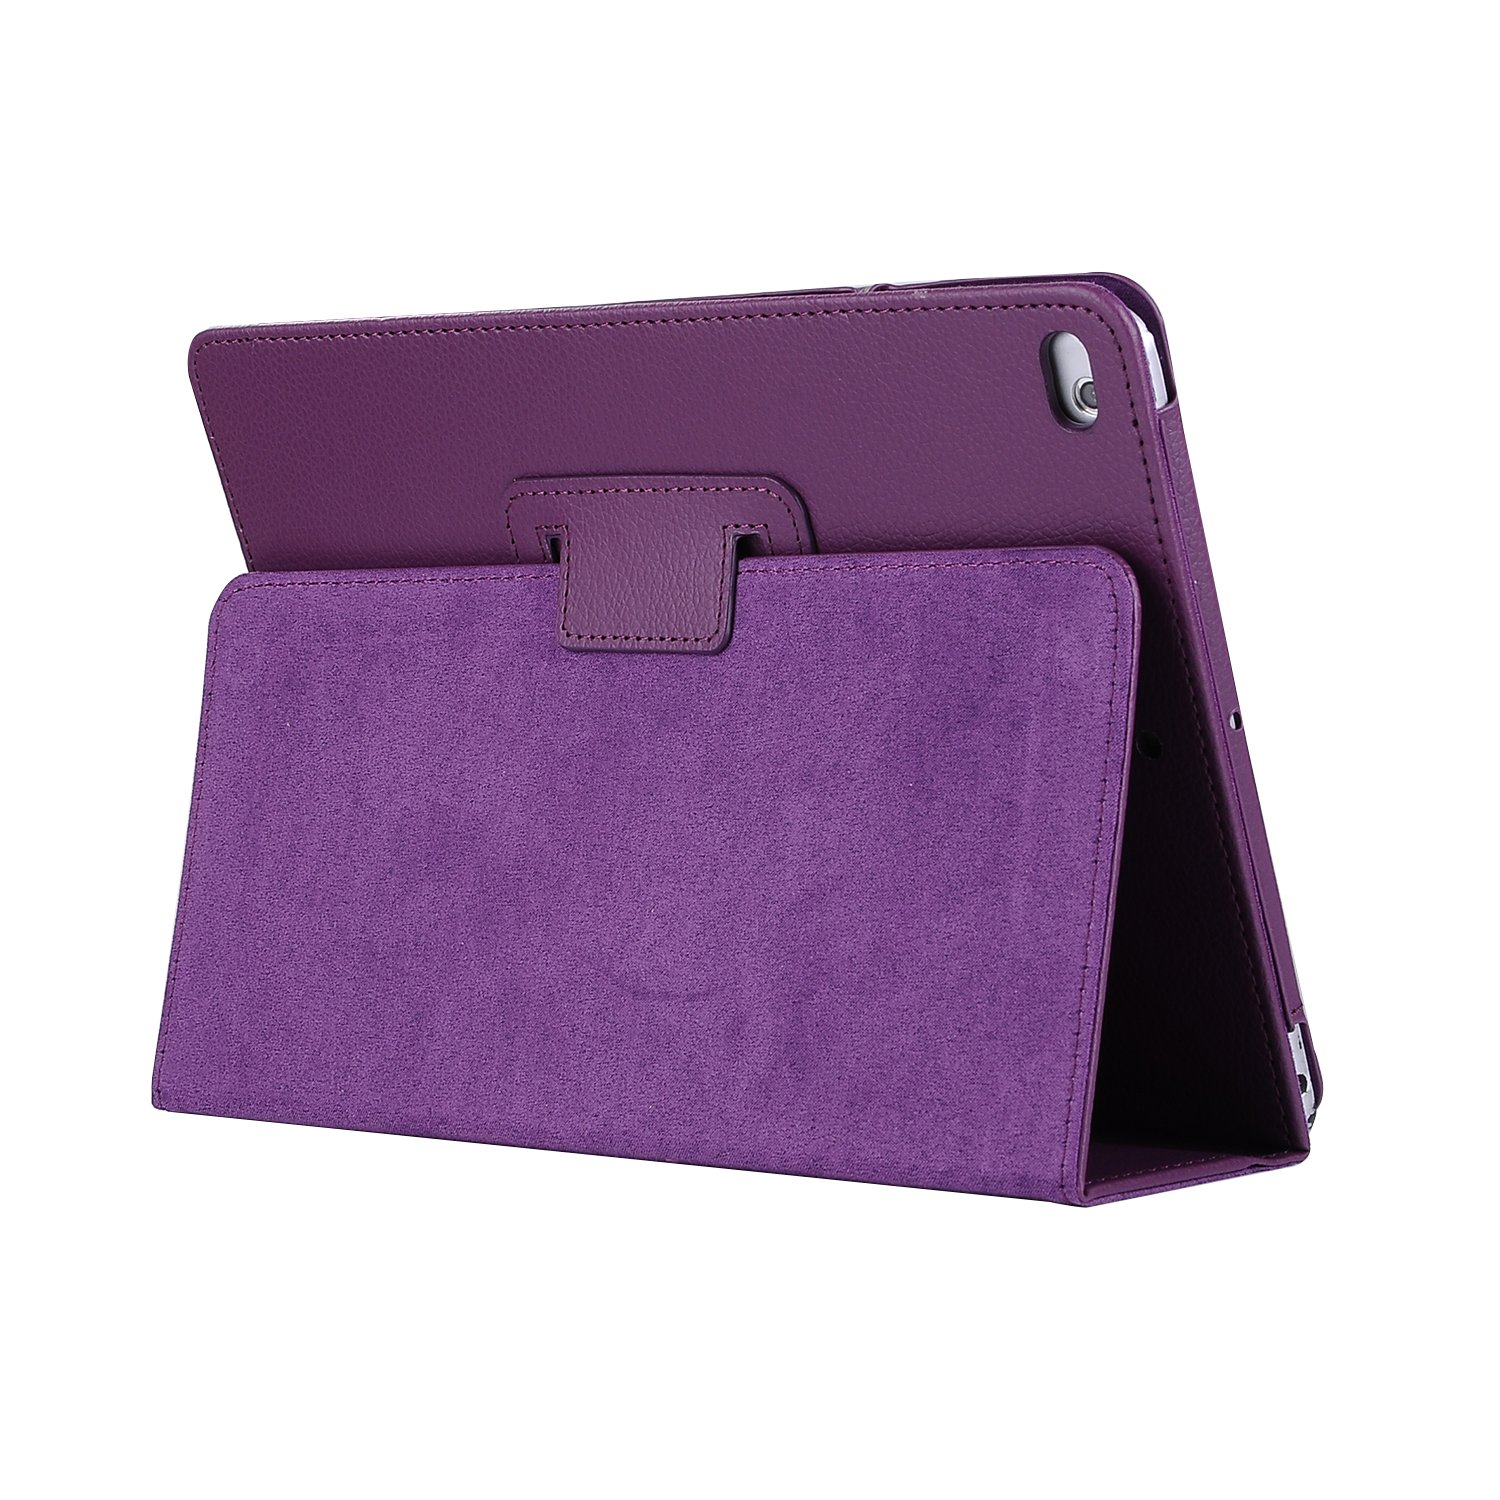 Apple Capa for Cover A2232 Funda Foilo-Stand iPad A2197 Tablet A2200 7th Case